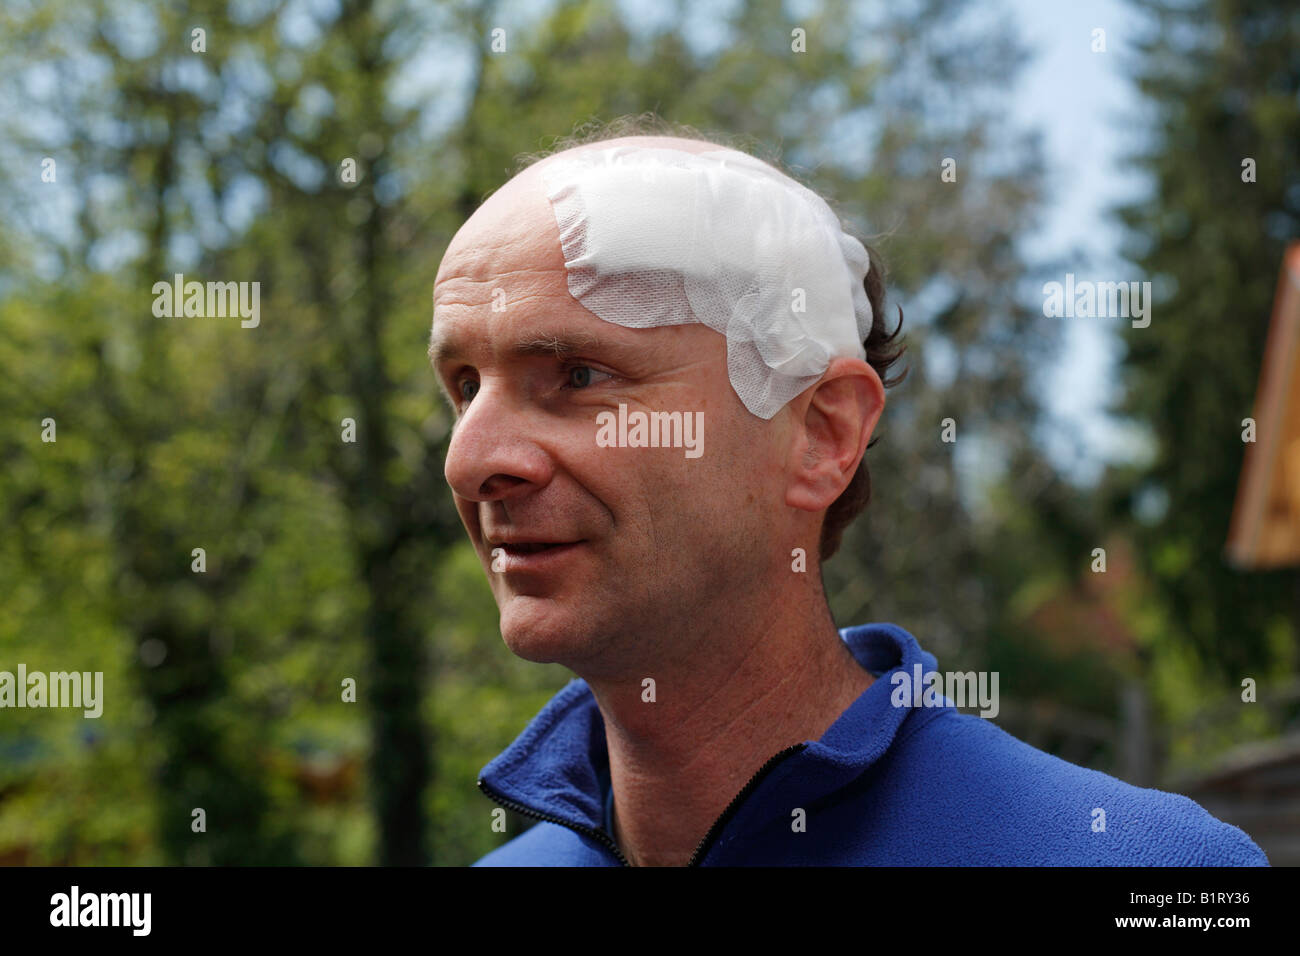 Portrait of a man, 45, with an adhesive bandage on his head, Geretsried, Bavaria, Germany, Europe Stock Photo